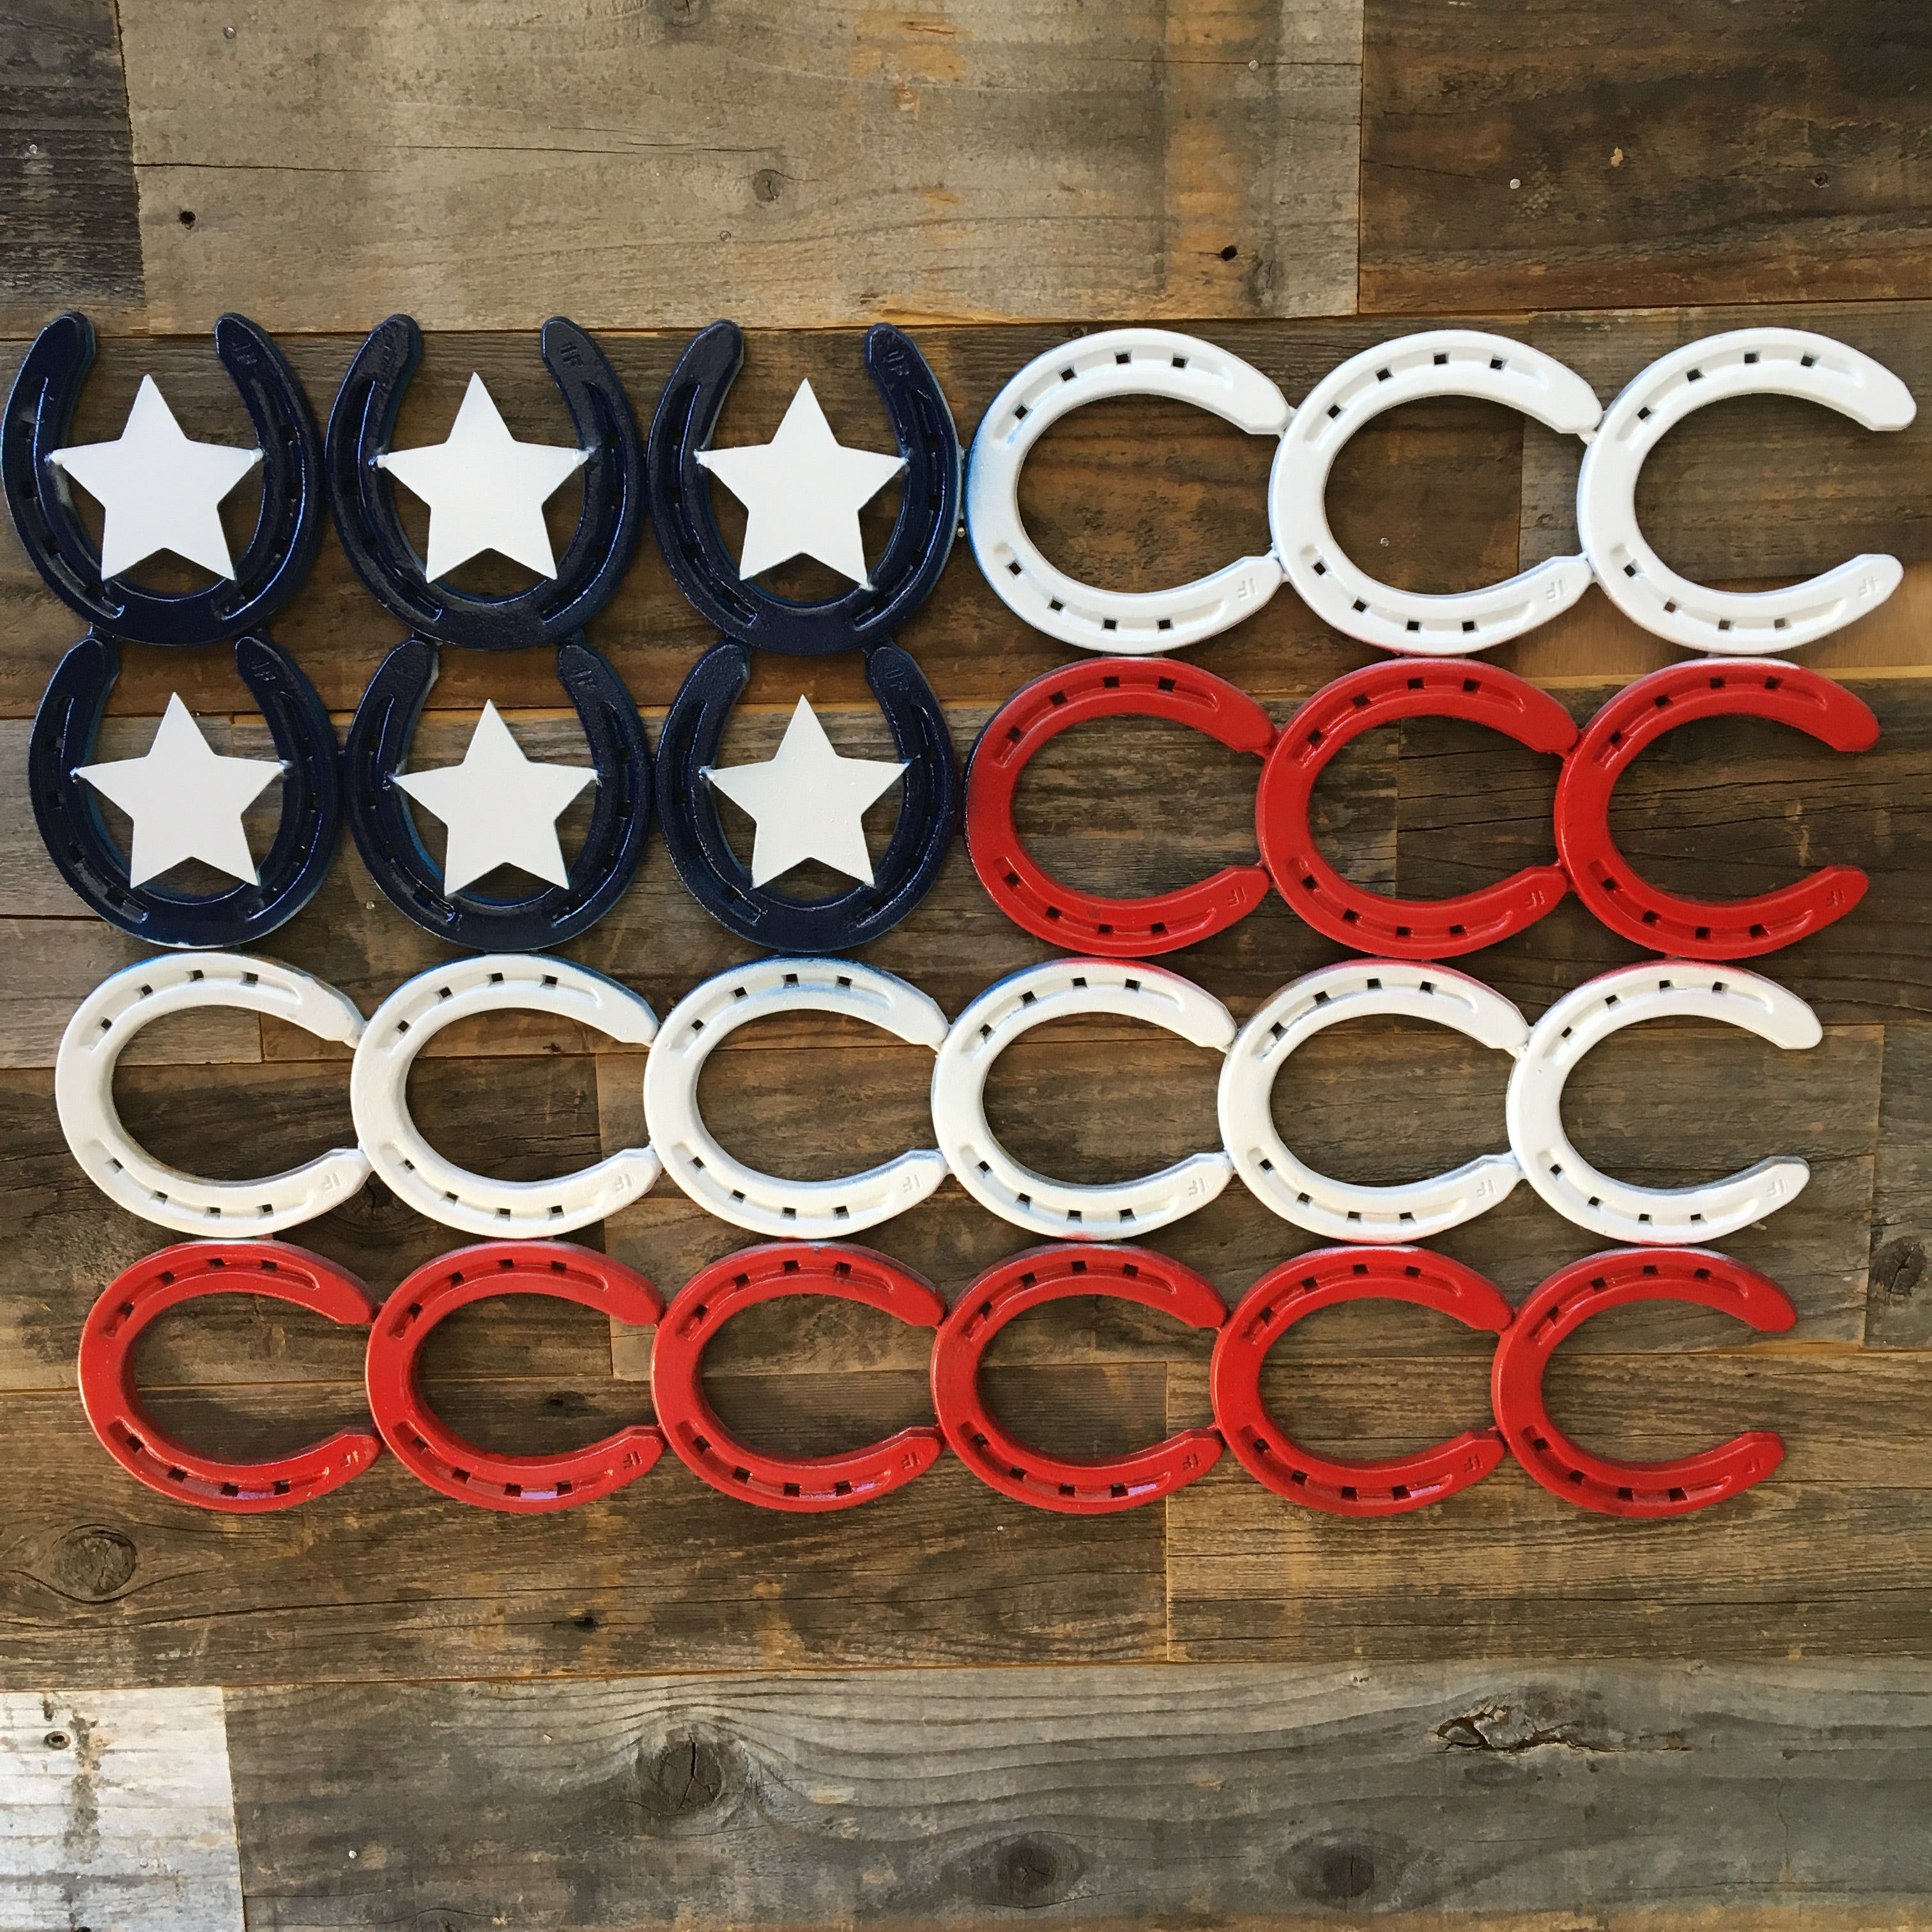 Made In America Rustic Horseshoe American Flag - Natural Metal - The Heritage Forge